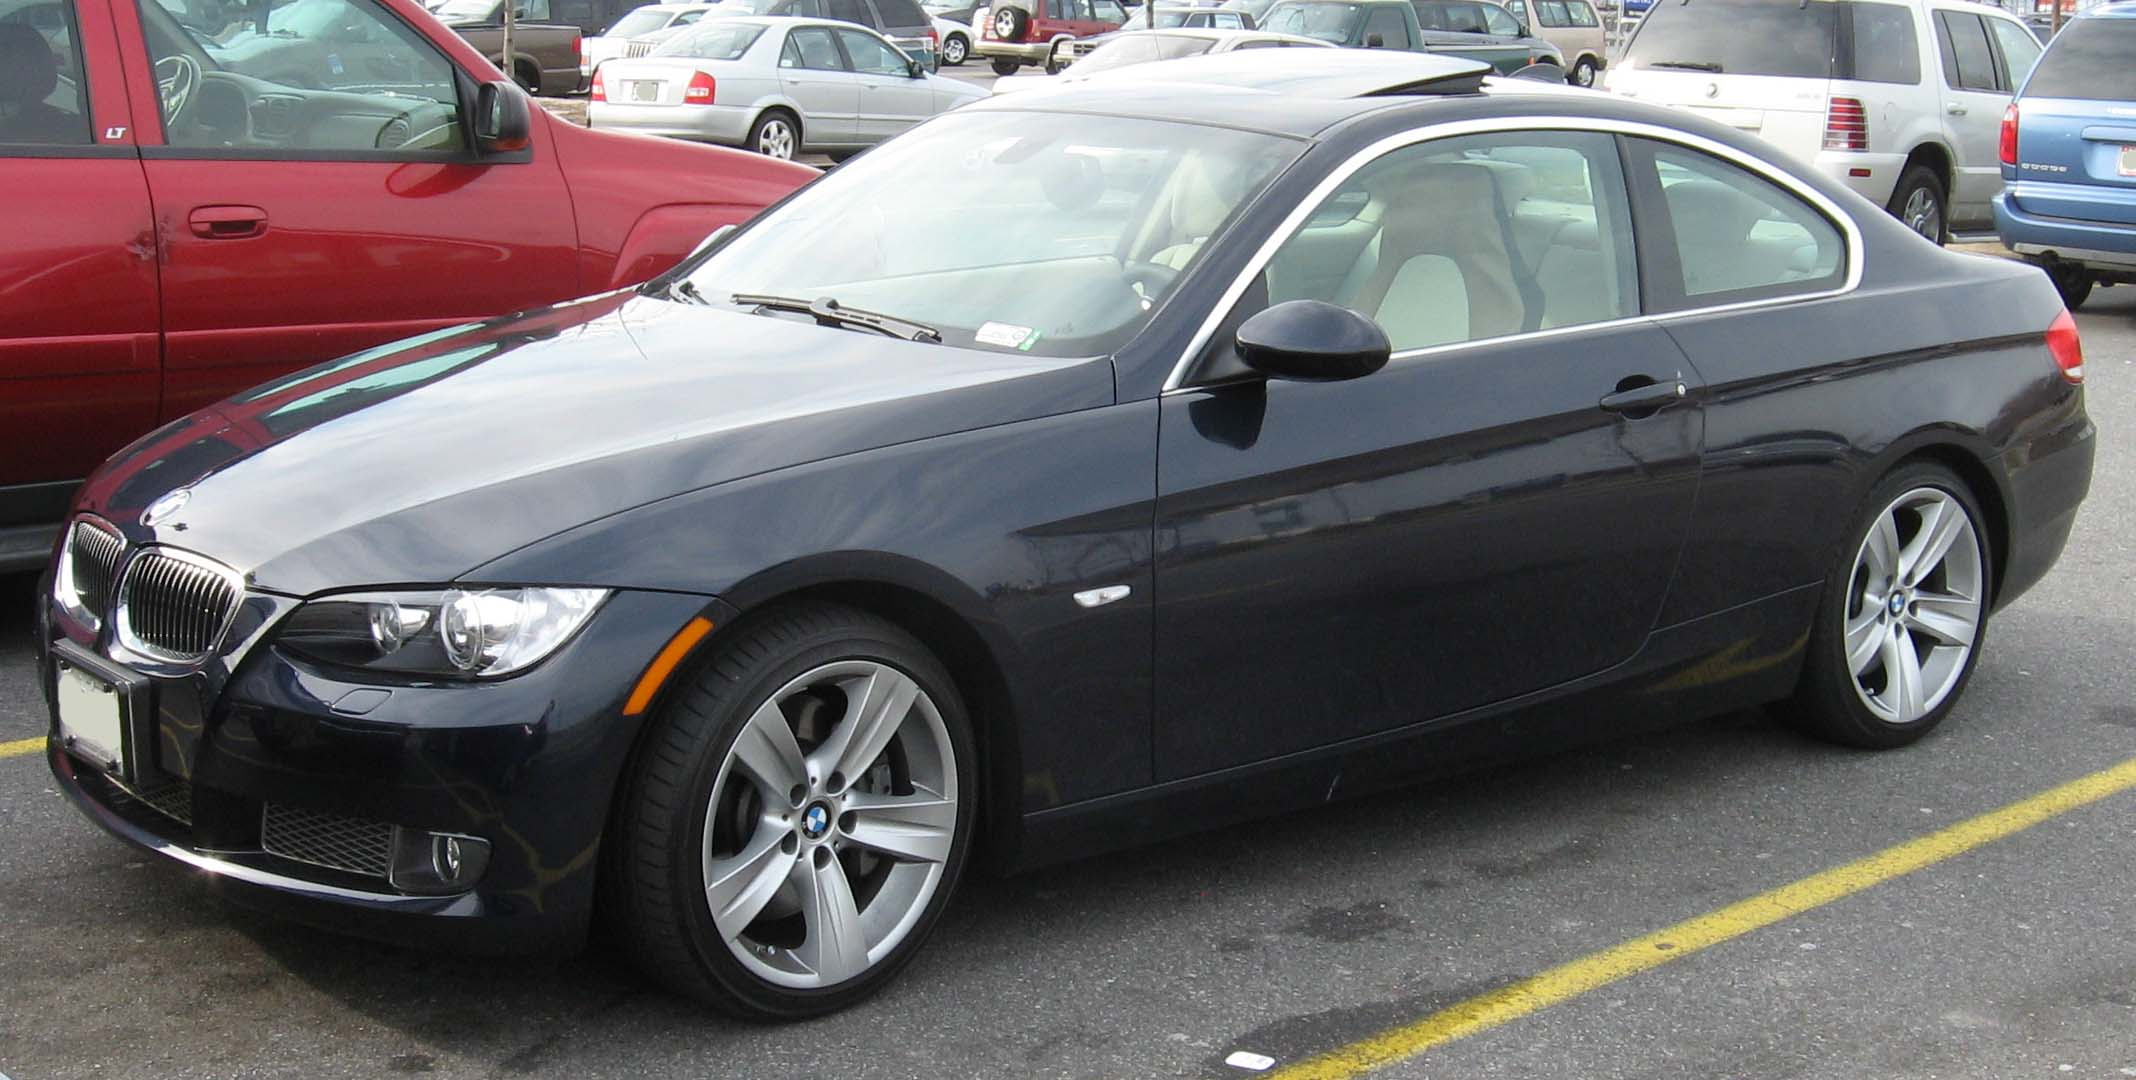 Bmw 335I Convertible >> File:2007-BMW-335i-coupe.jpg - Wikimedia Commons